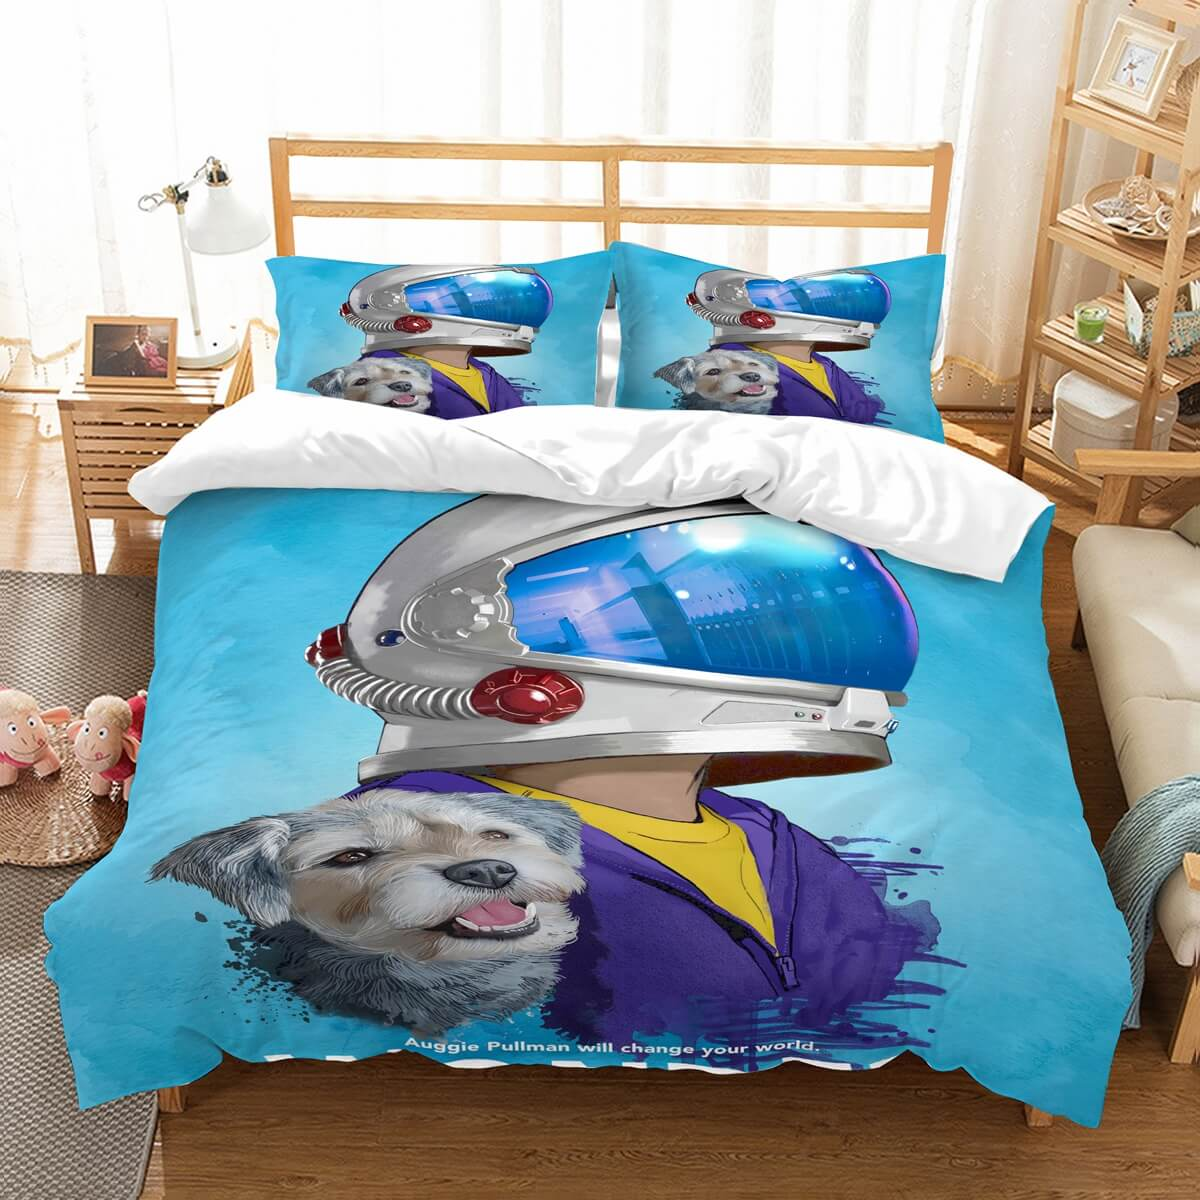 3D Customize Wonder Bedding Set Duvet Cover Set Bedroom Set Bedlinen